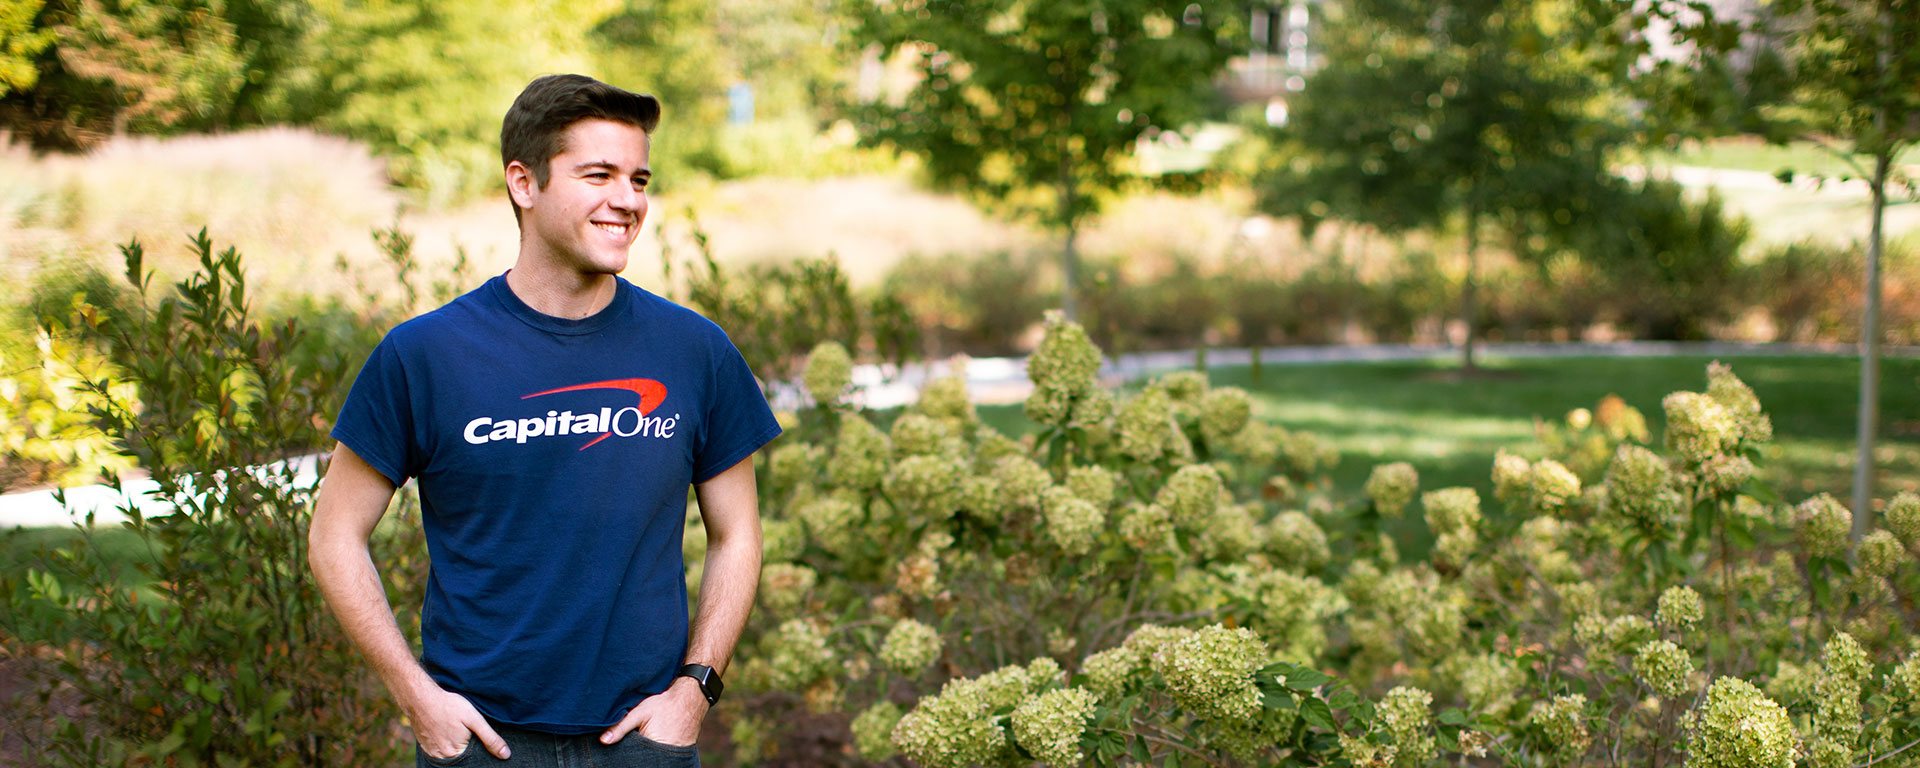 tech recruiter standing outside in capital one shirt